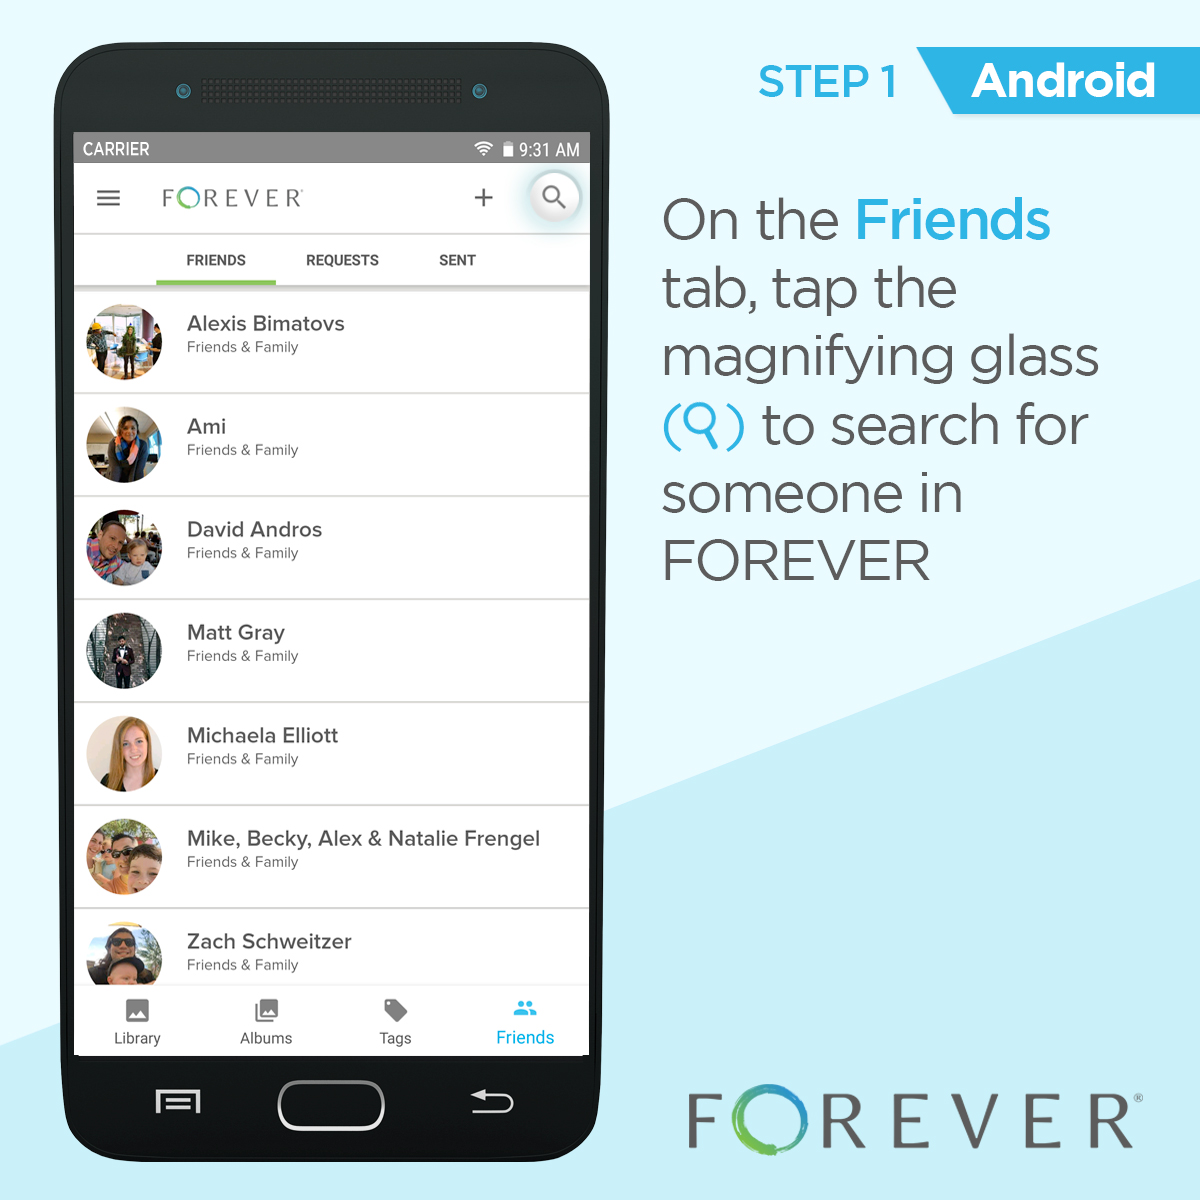 1_FriendsFamilySearch_Android_MM.jpg